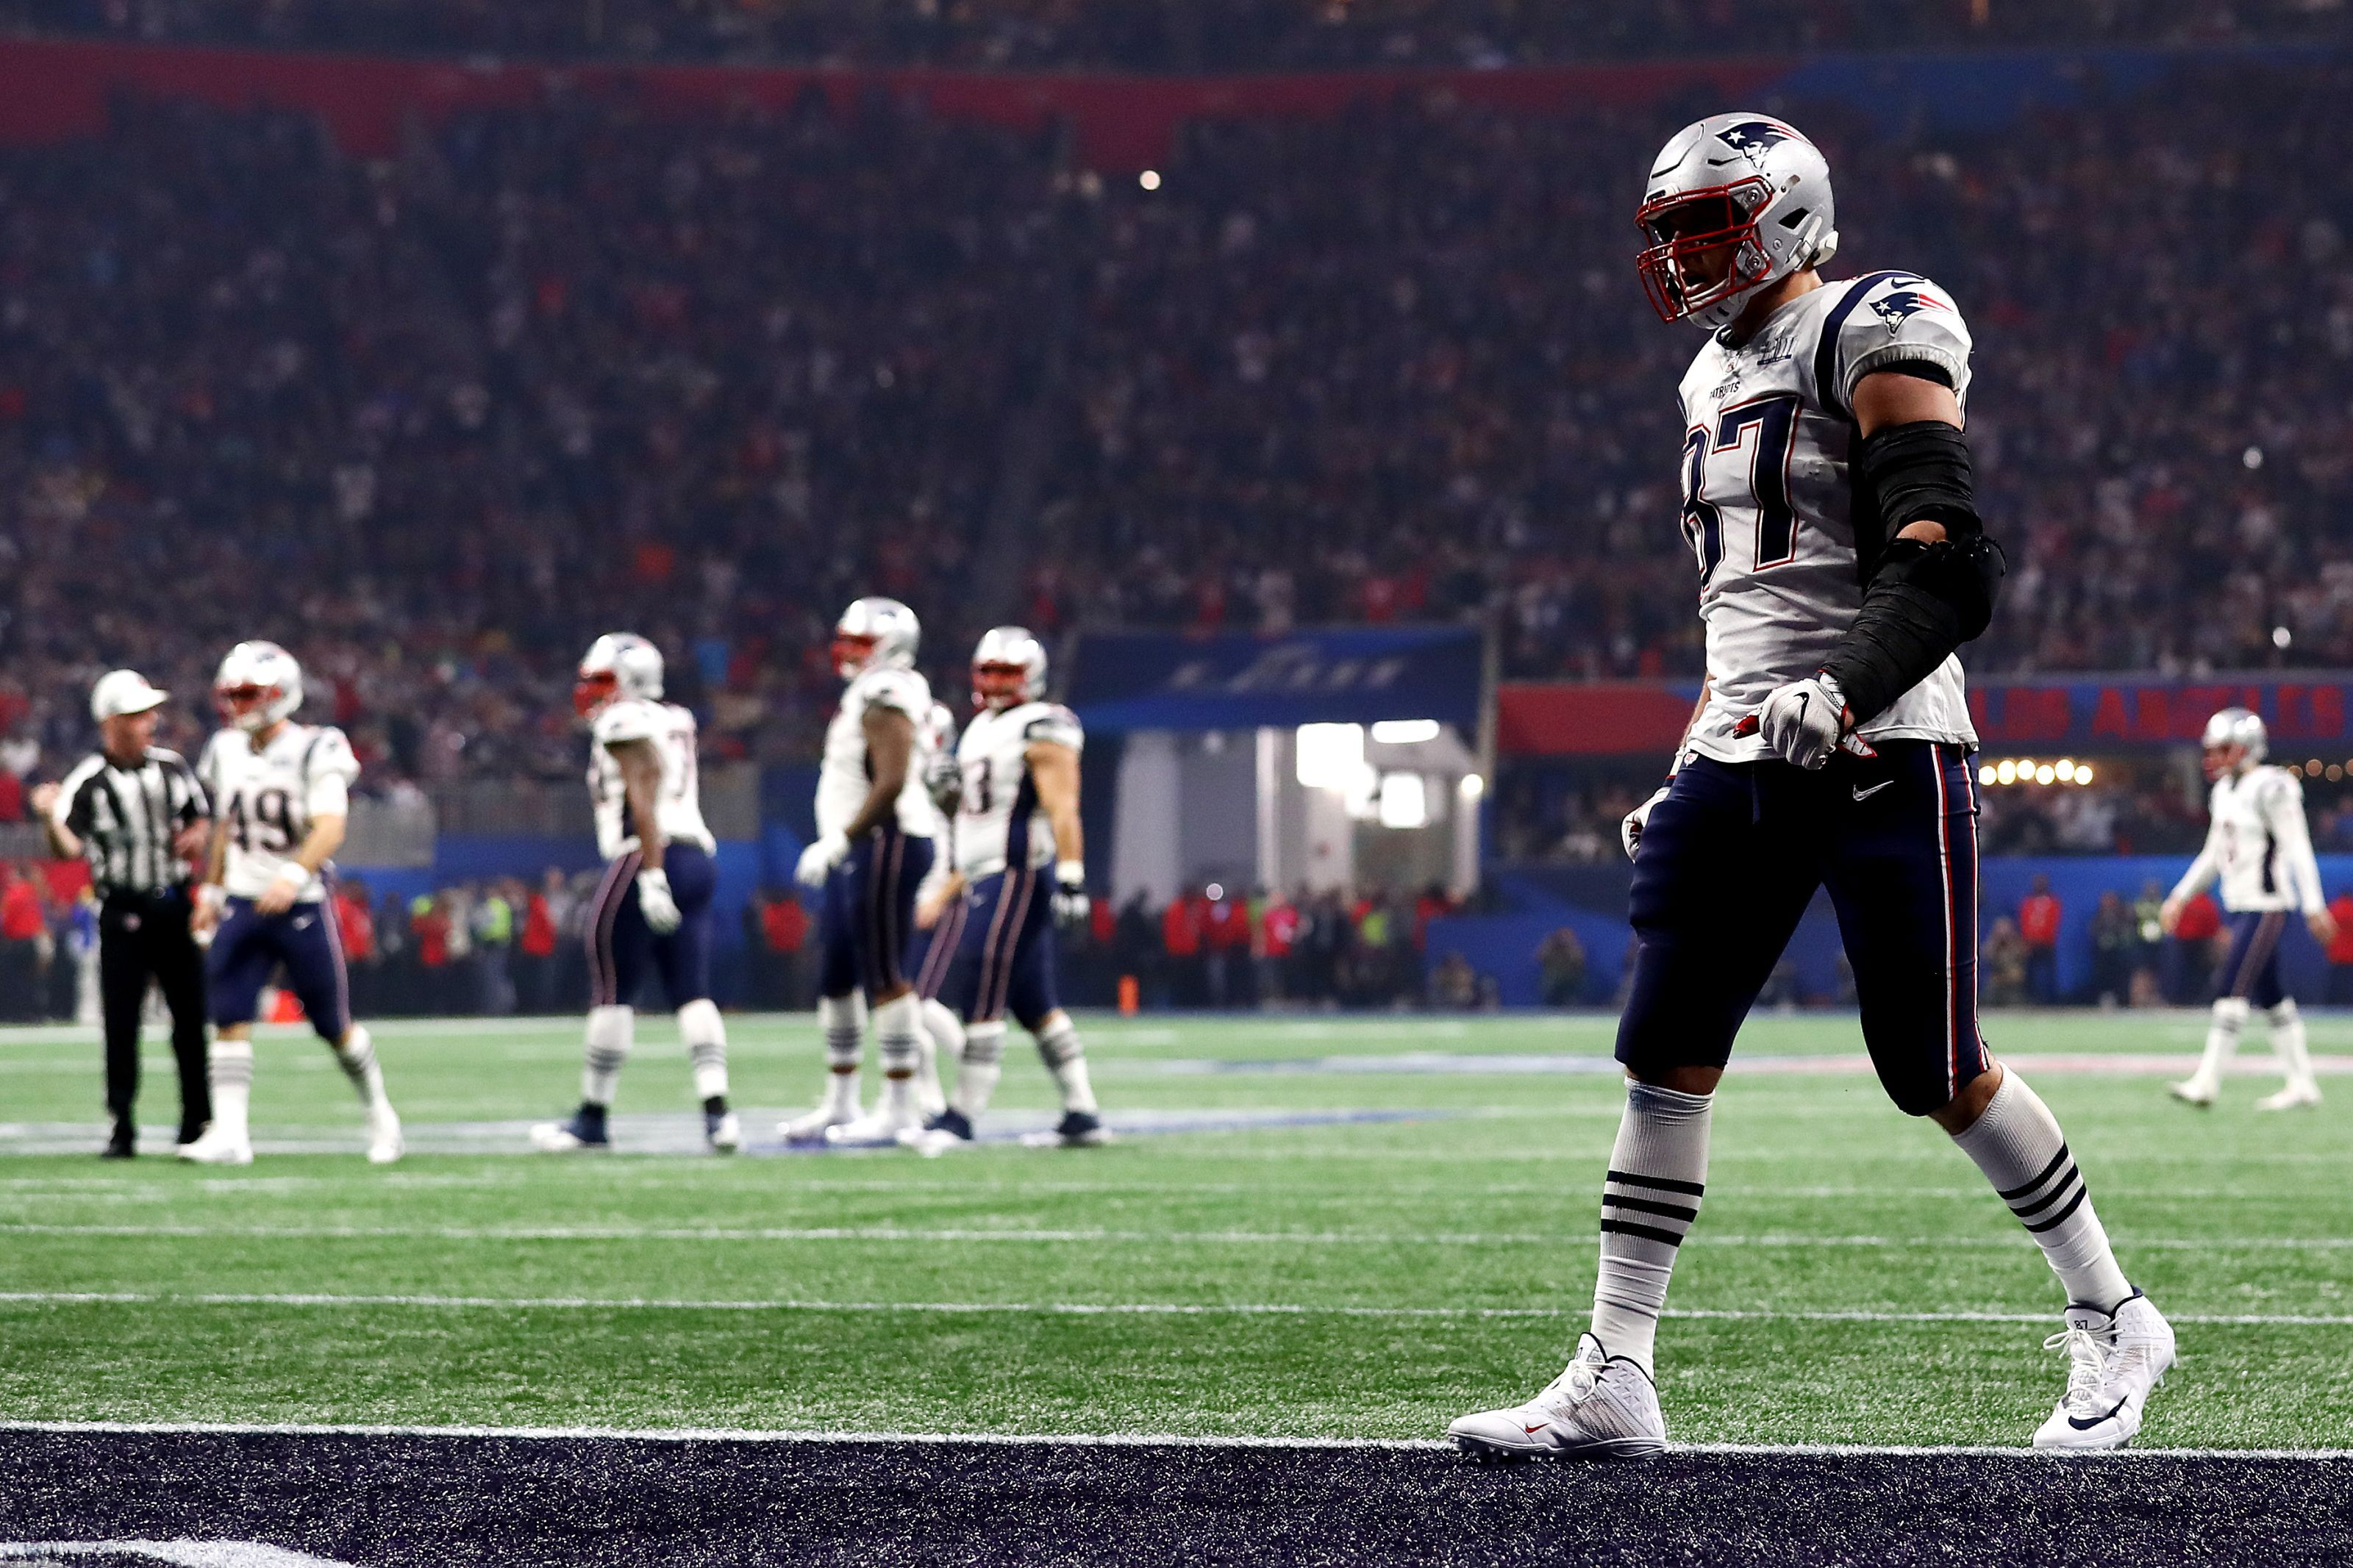 New England Patriots Rob Gronkowski Is Not Coming Back And Its Okay National Football League News Gronkowski Nfl News Rob Gronkowski